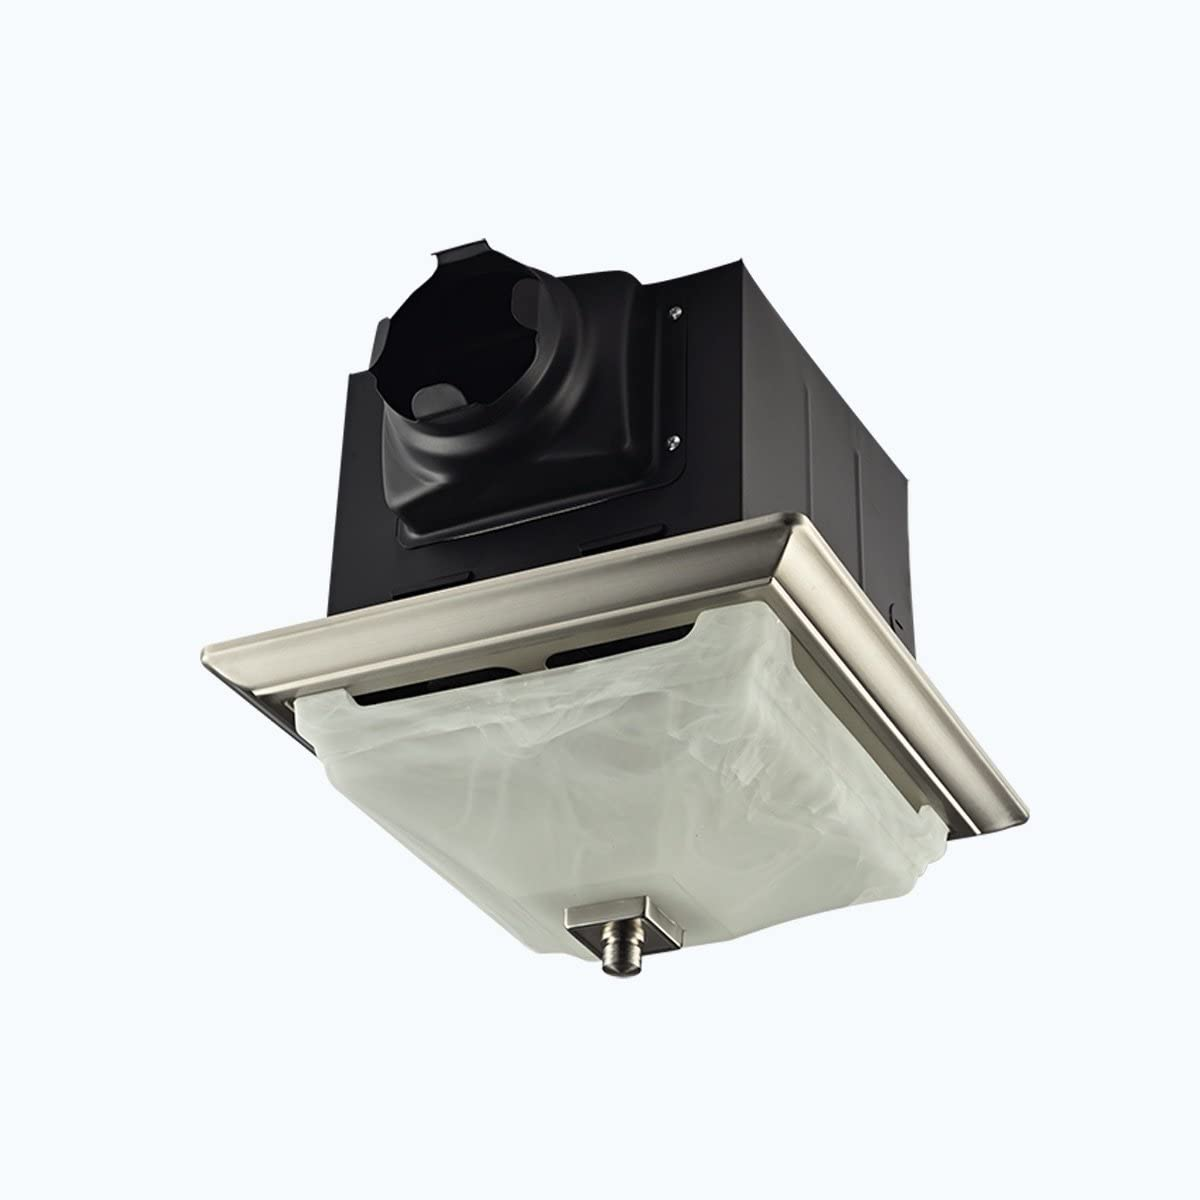 B07DB1NG2R Lift Bridge Kitchen & Bath DSQR110BN Exhaust Bath Fan, Brushed Nickel 61AosSqcCuL.SL1200_